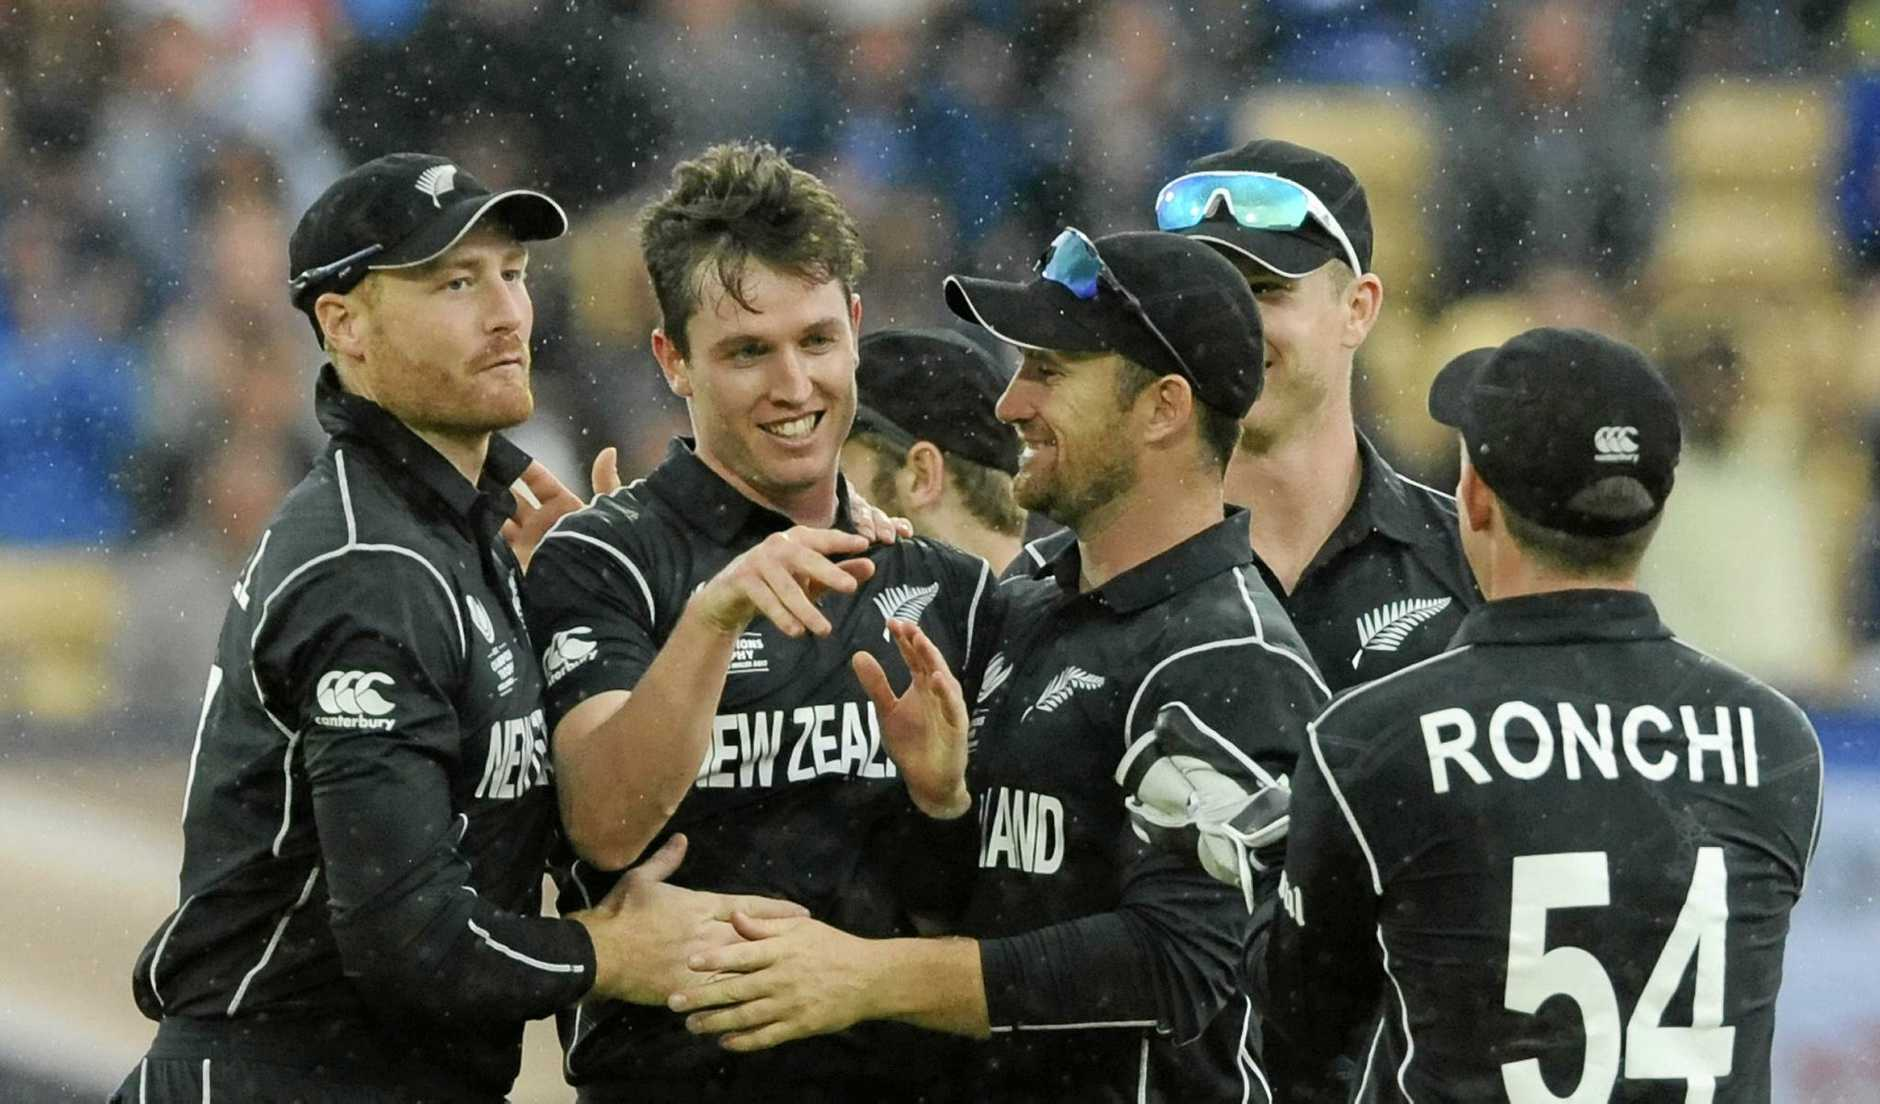 Teammates congratulate New Zealand's Adam Milne for the dismissal of Australia's Moises Henriques during the ICC Champions Trophy match between Australia and New Zealand at Edgbaston in Birmingham, England, Friday, June 2, 2017. (AP Photo/Rui Vieira)